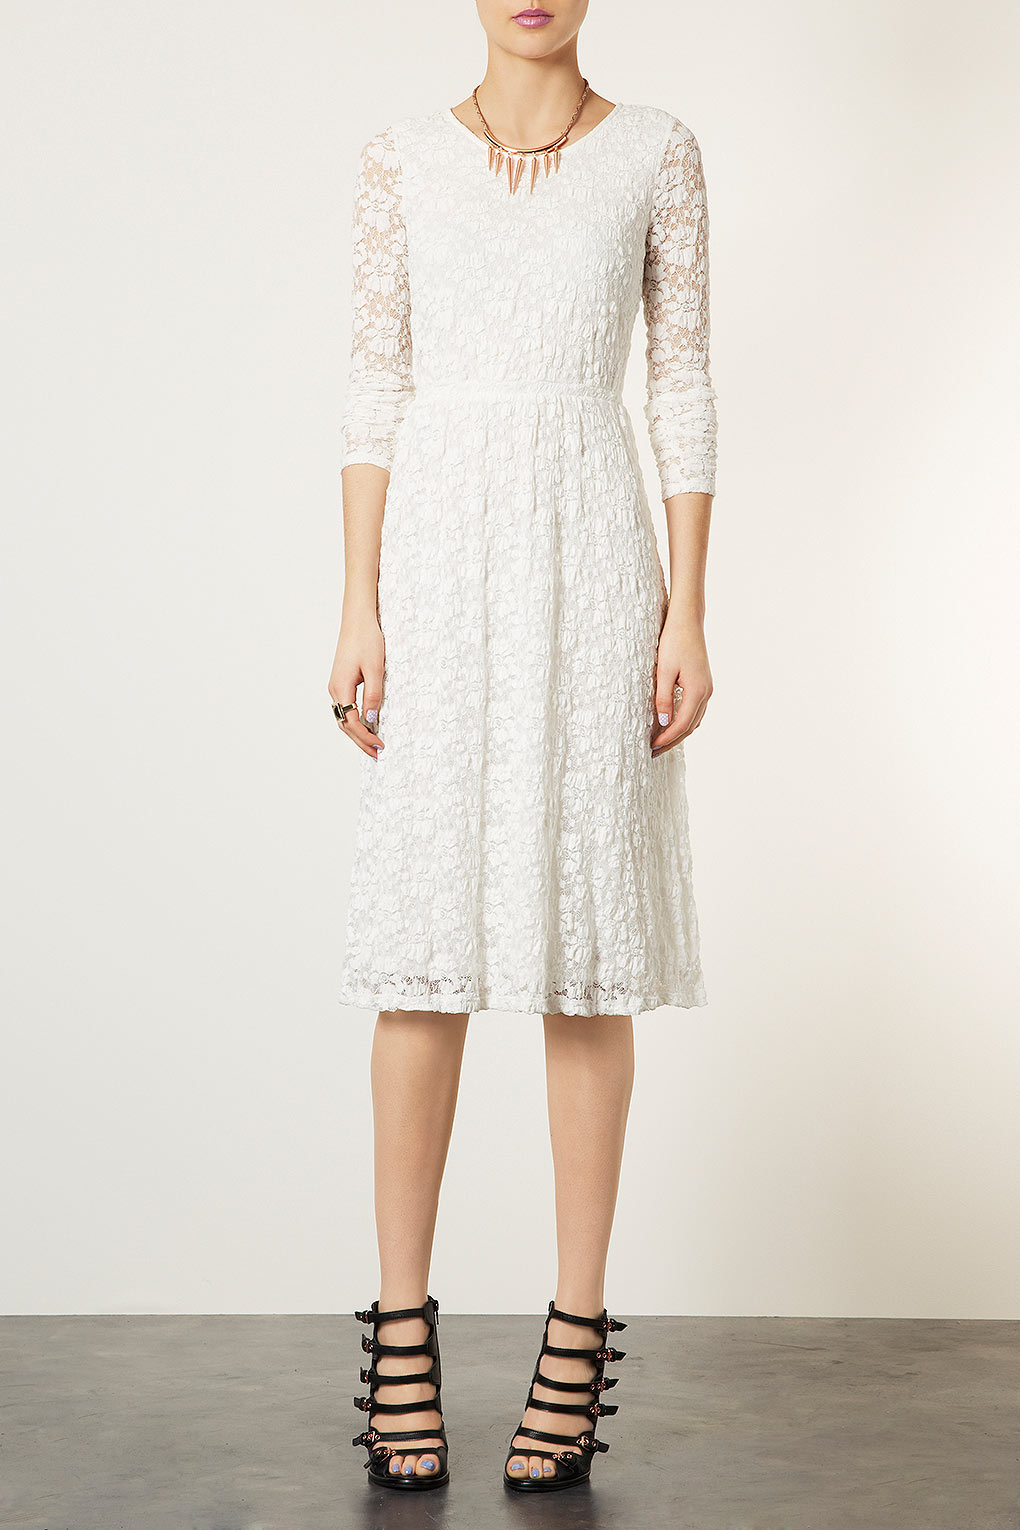 Topshop Lace Midi Dress In White Lyst